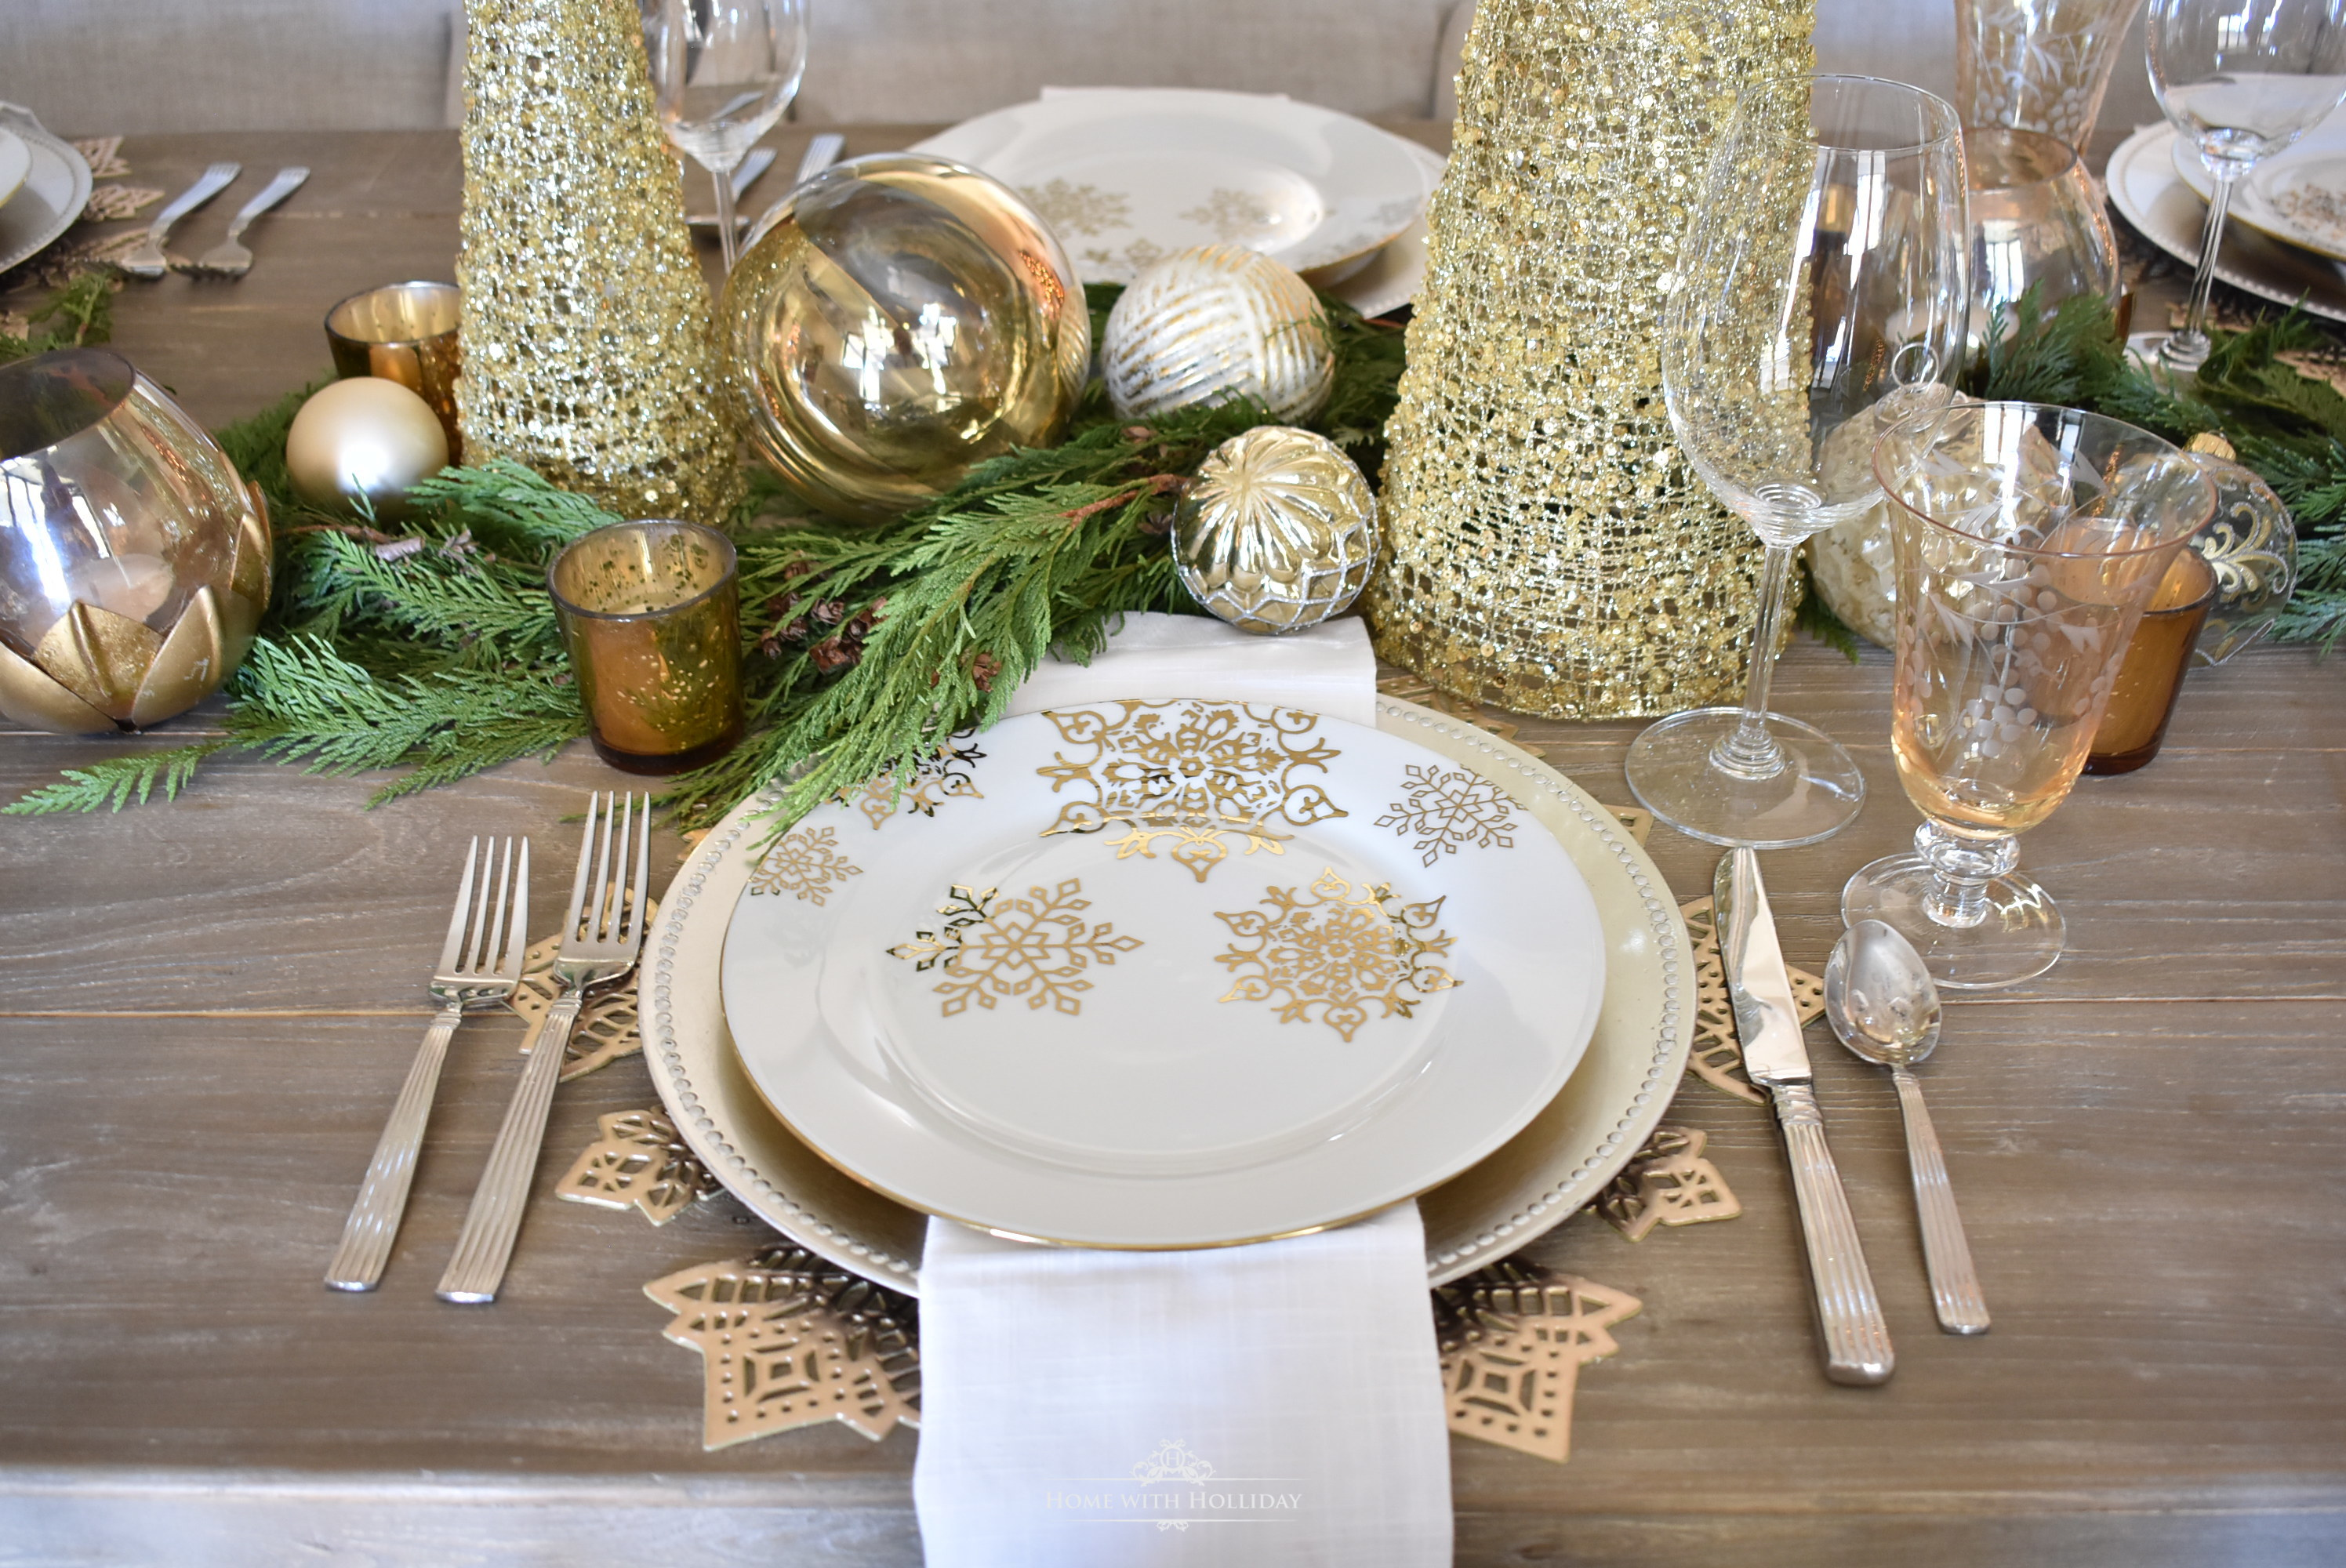 Place Settings for a Gold and Silver Snowflake Christmas Table Setting - Home with Holliday